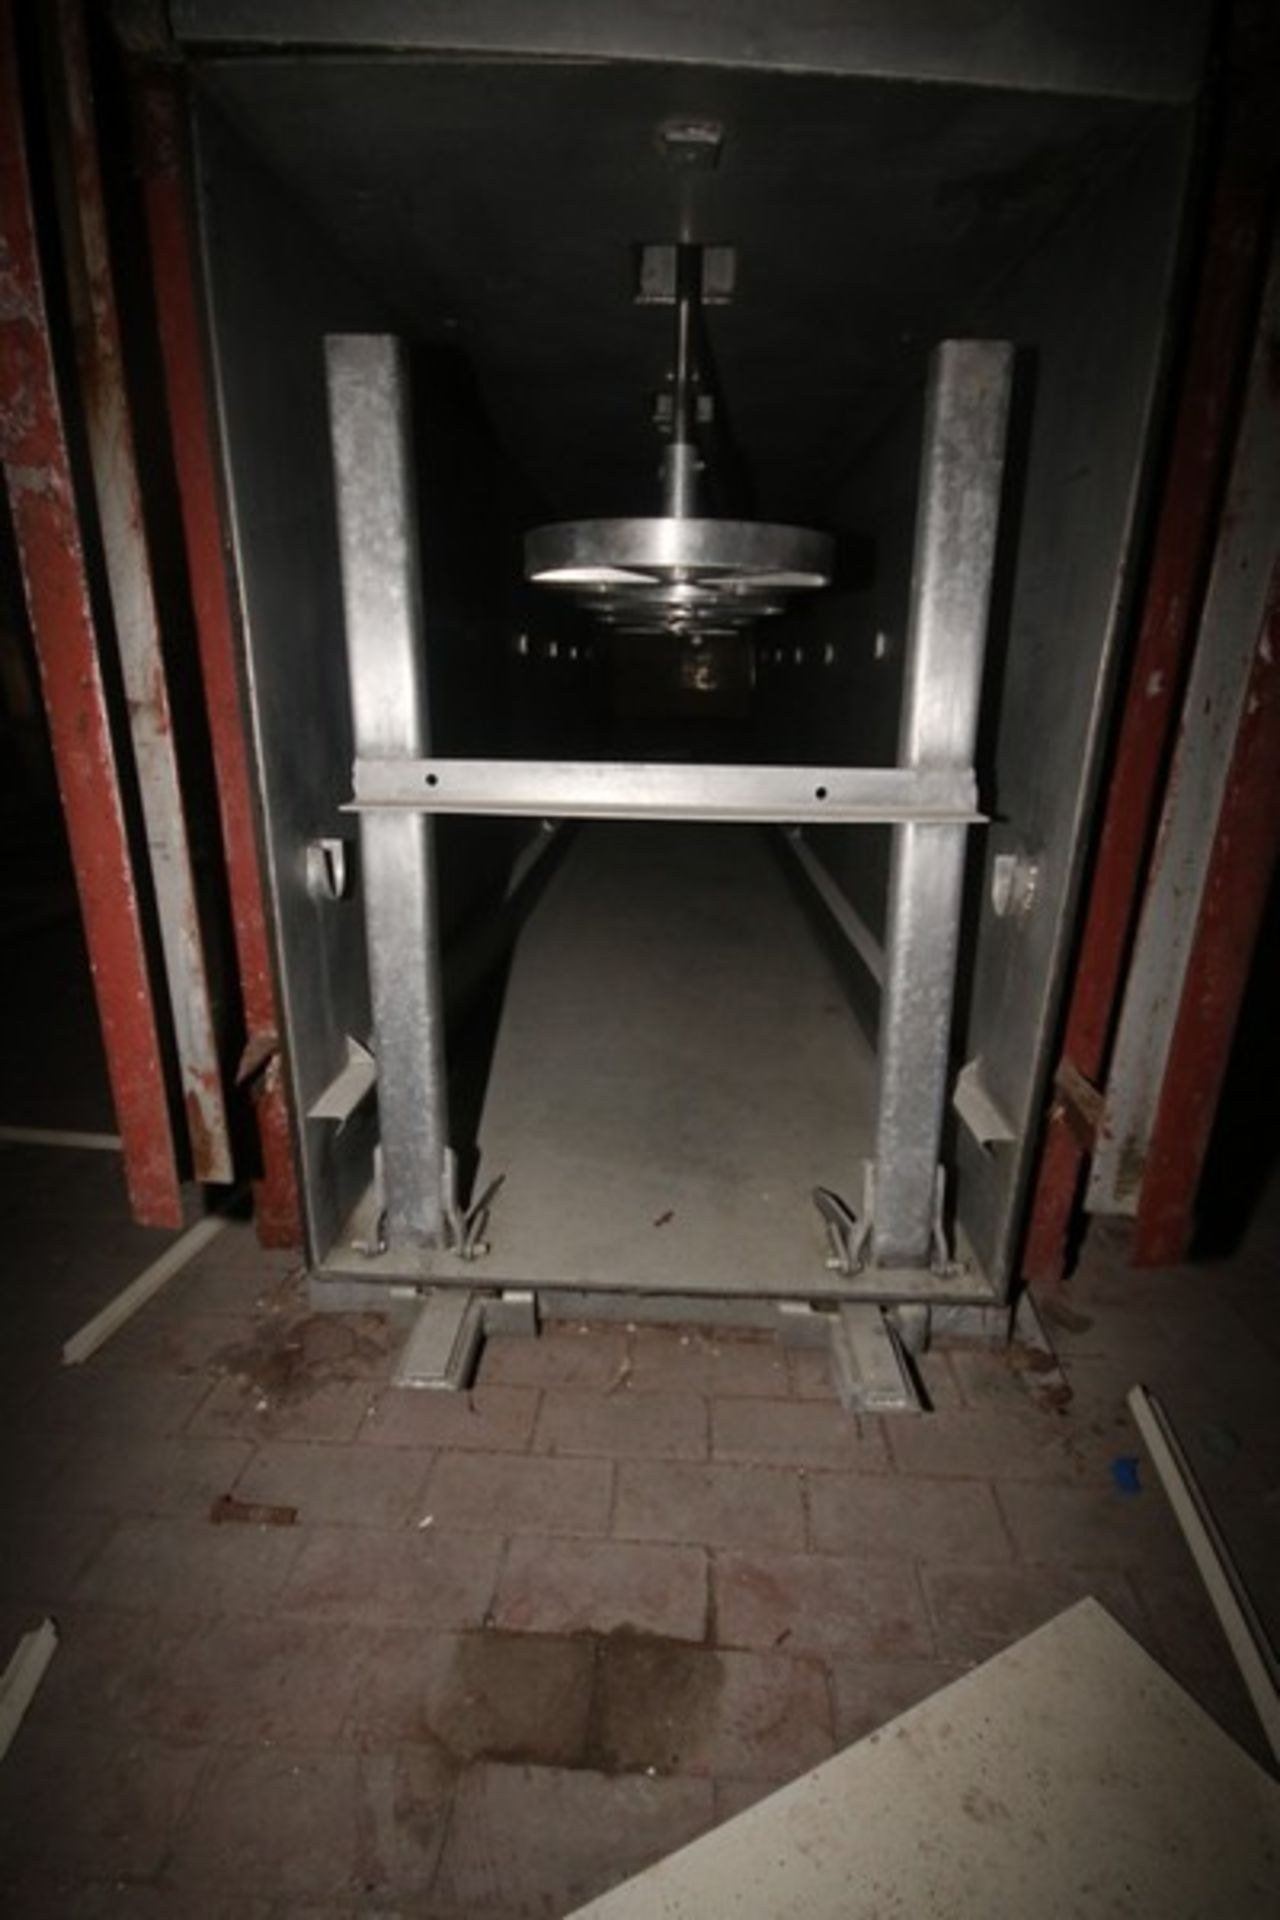 6-Station Enclosed Horizontal Barrel Cheese Press, Stainless Steel with Carbon Steel Frame, with - Image 3 of 6